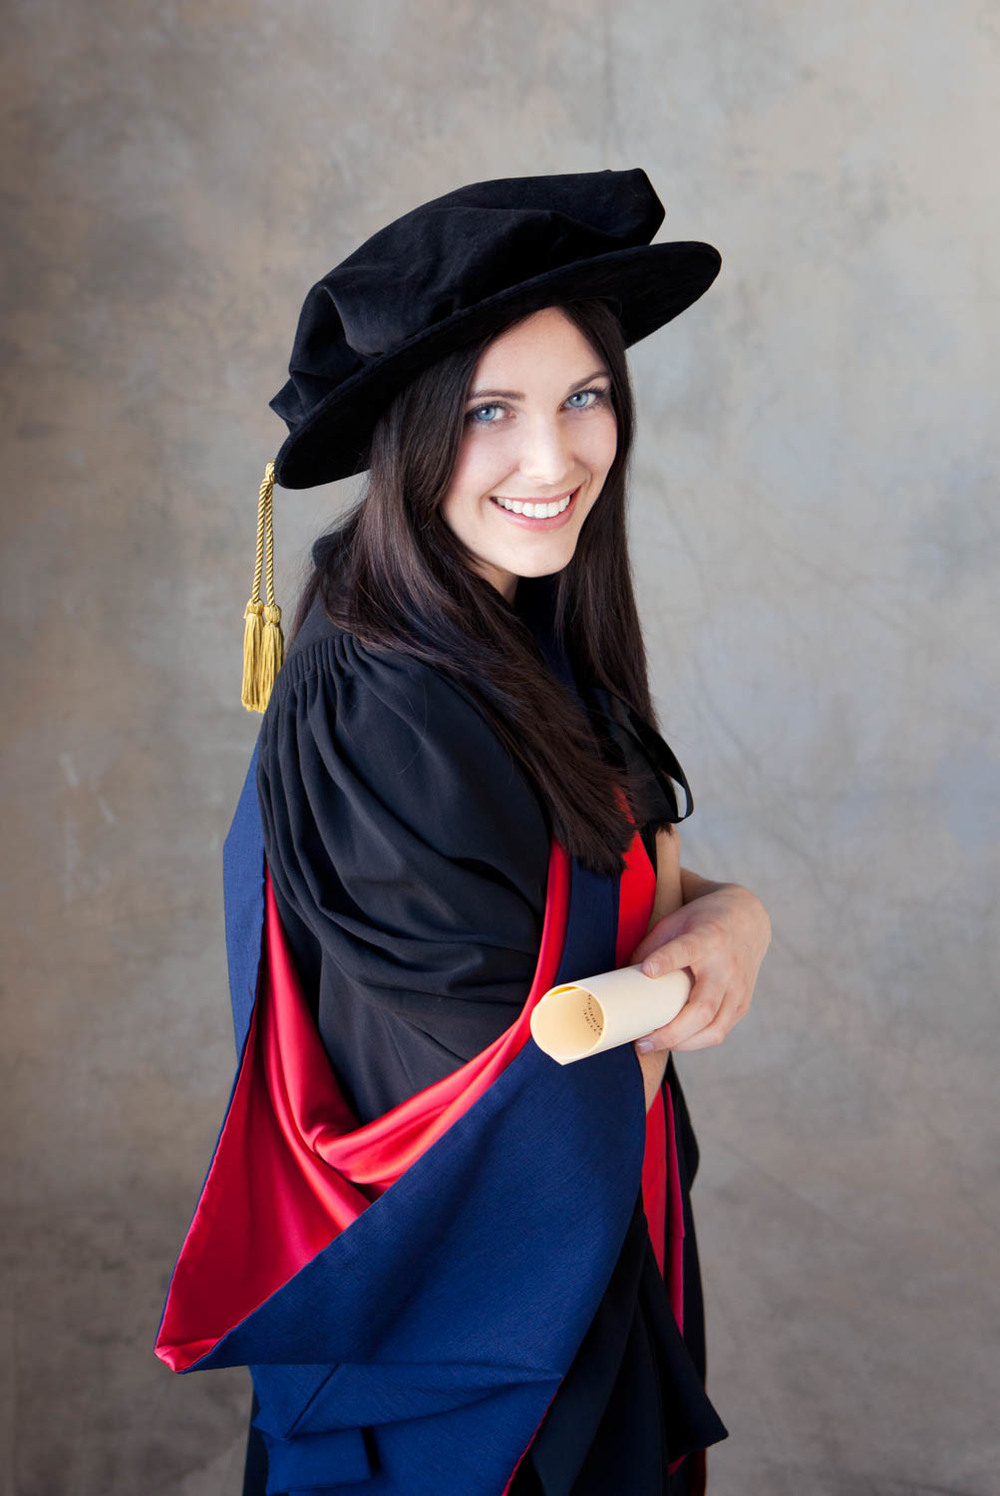 Graduation_Photographer_Auckland_17951_3614.jpg